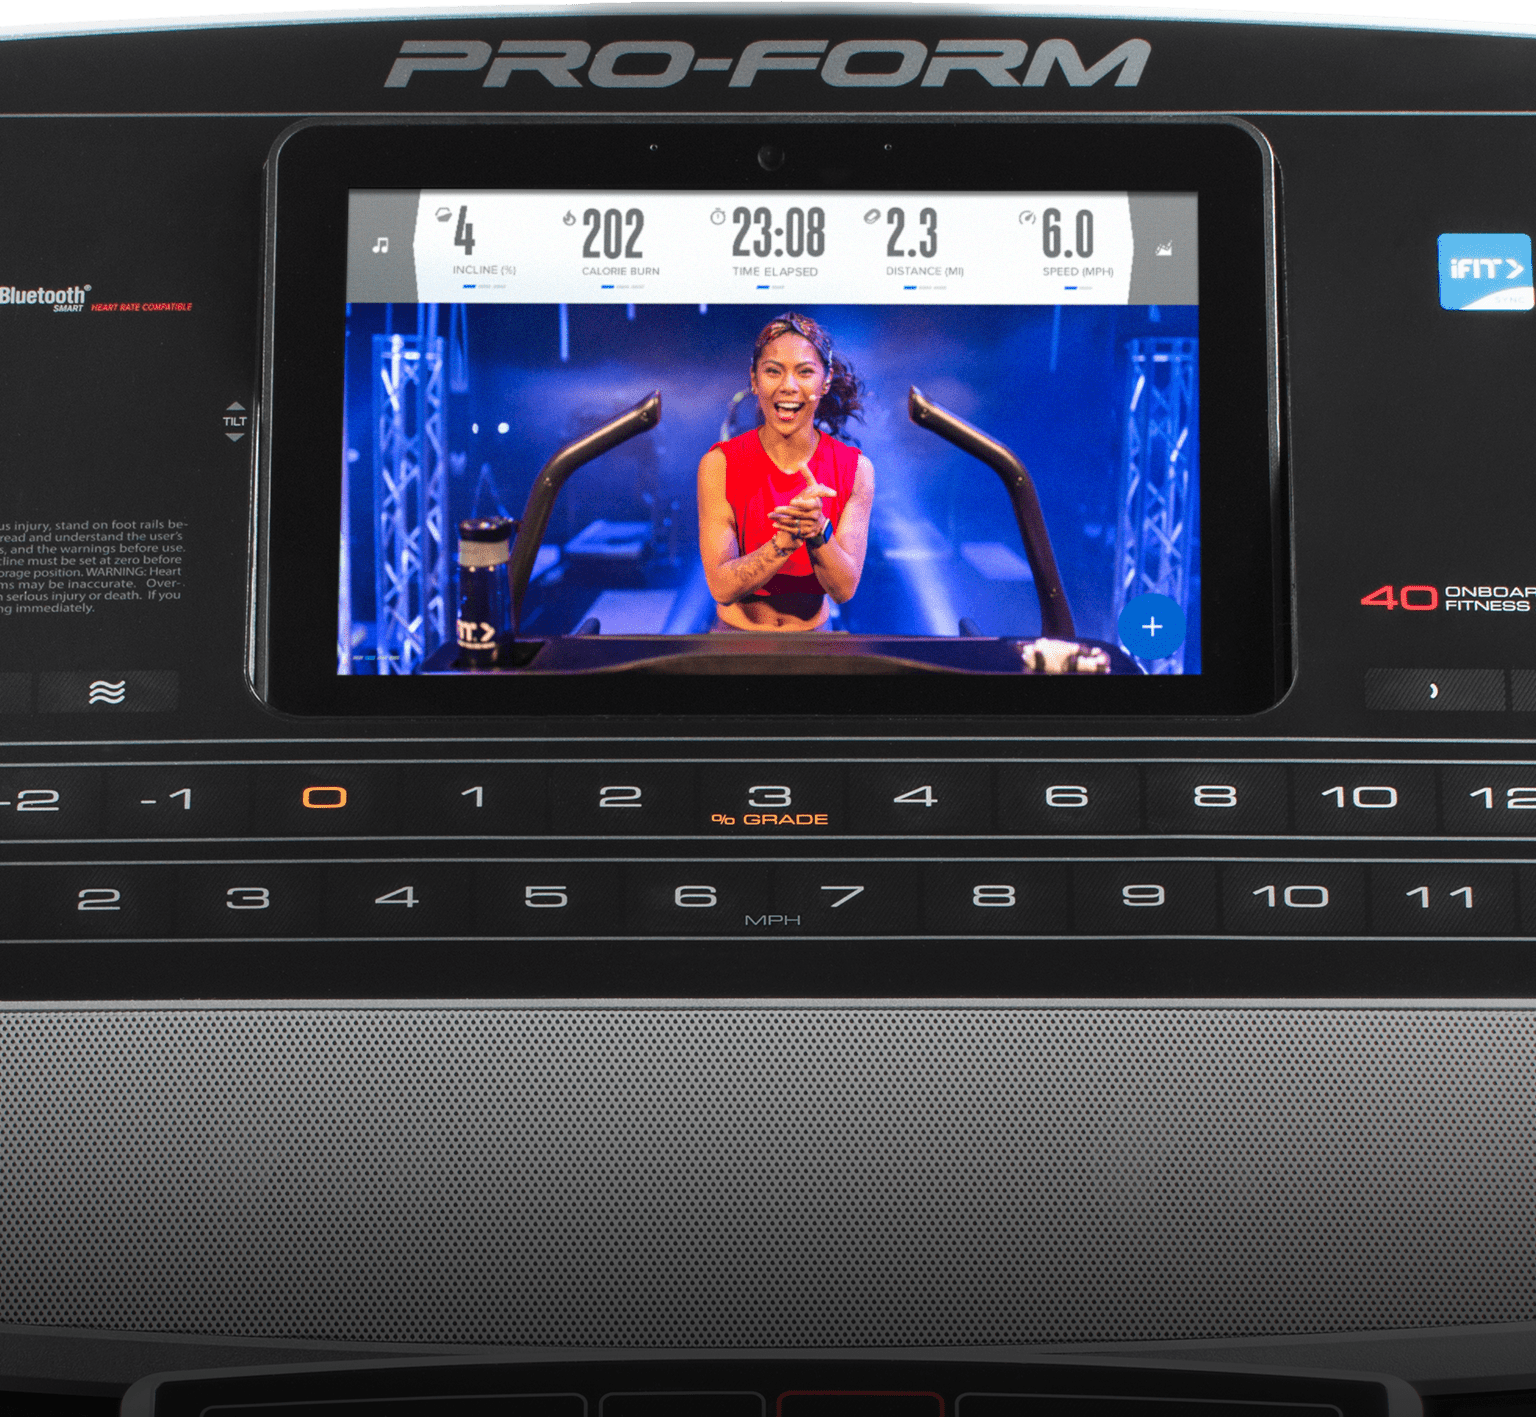 ProForm SMART Pro 9000 Treadmills